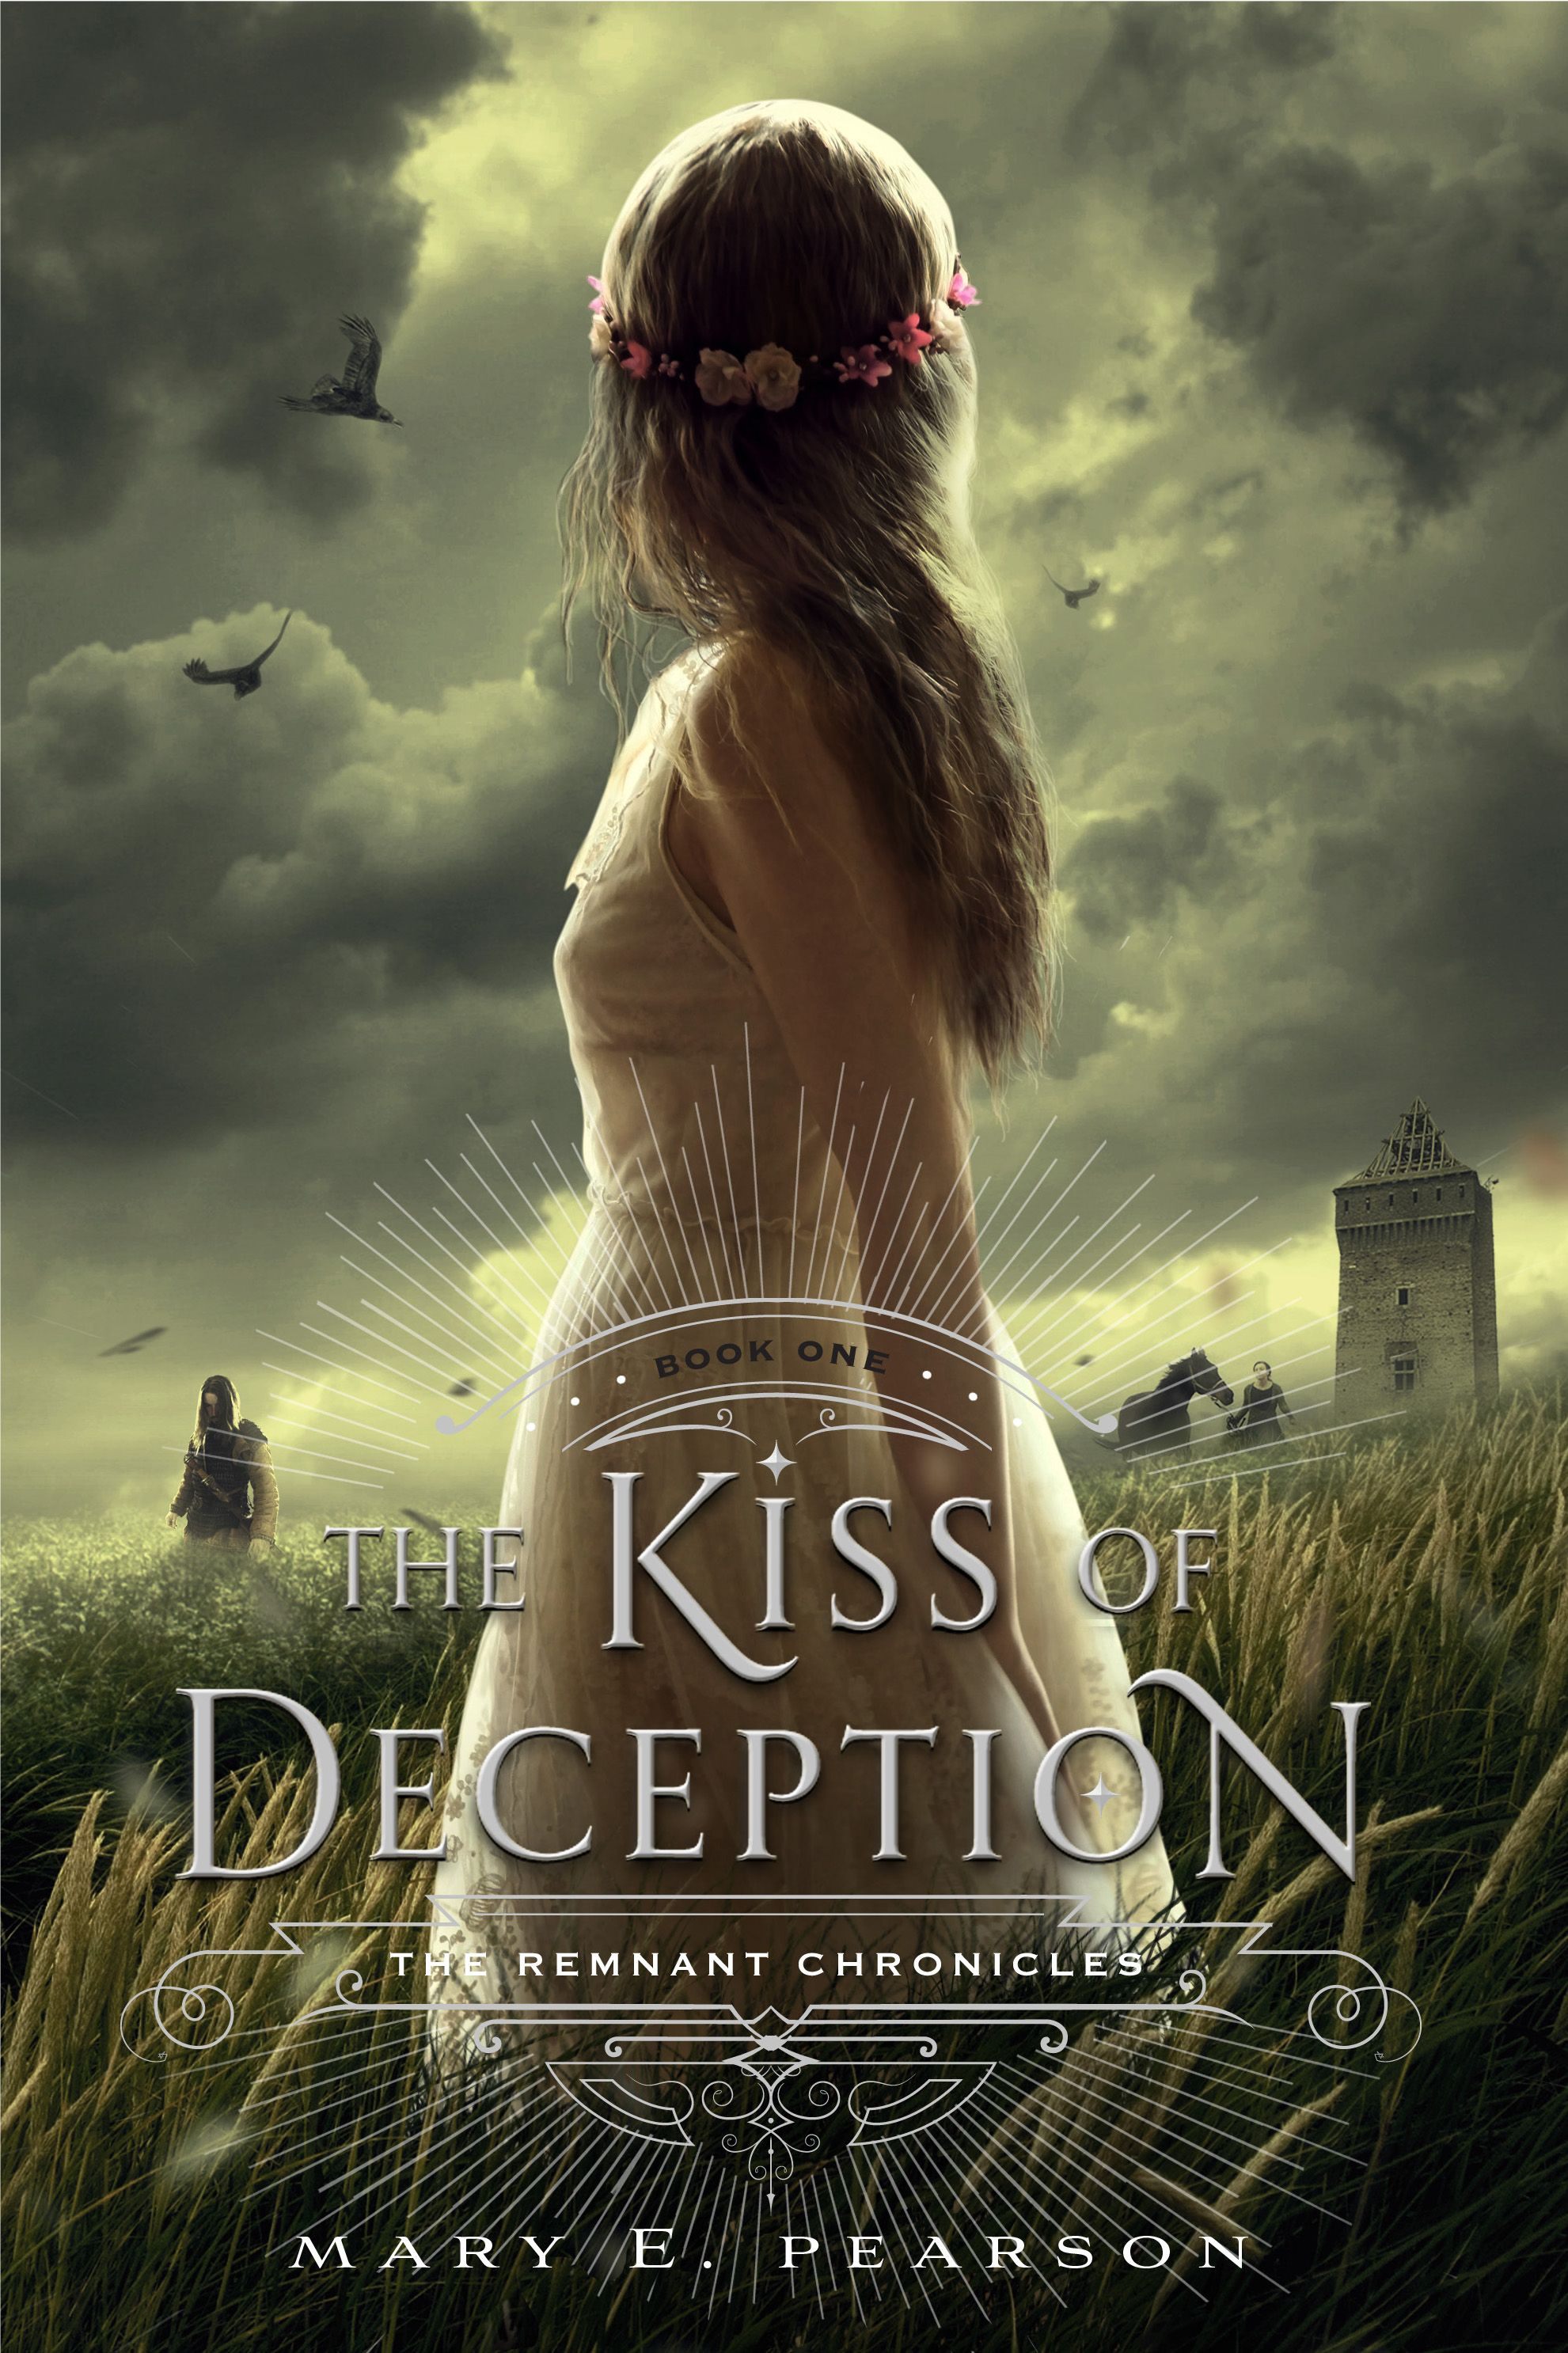 Image result for the kiss of deception book cover